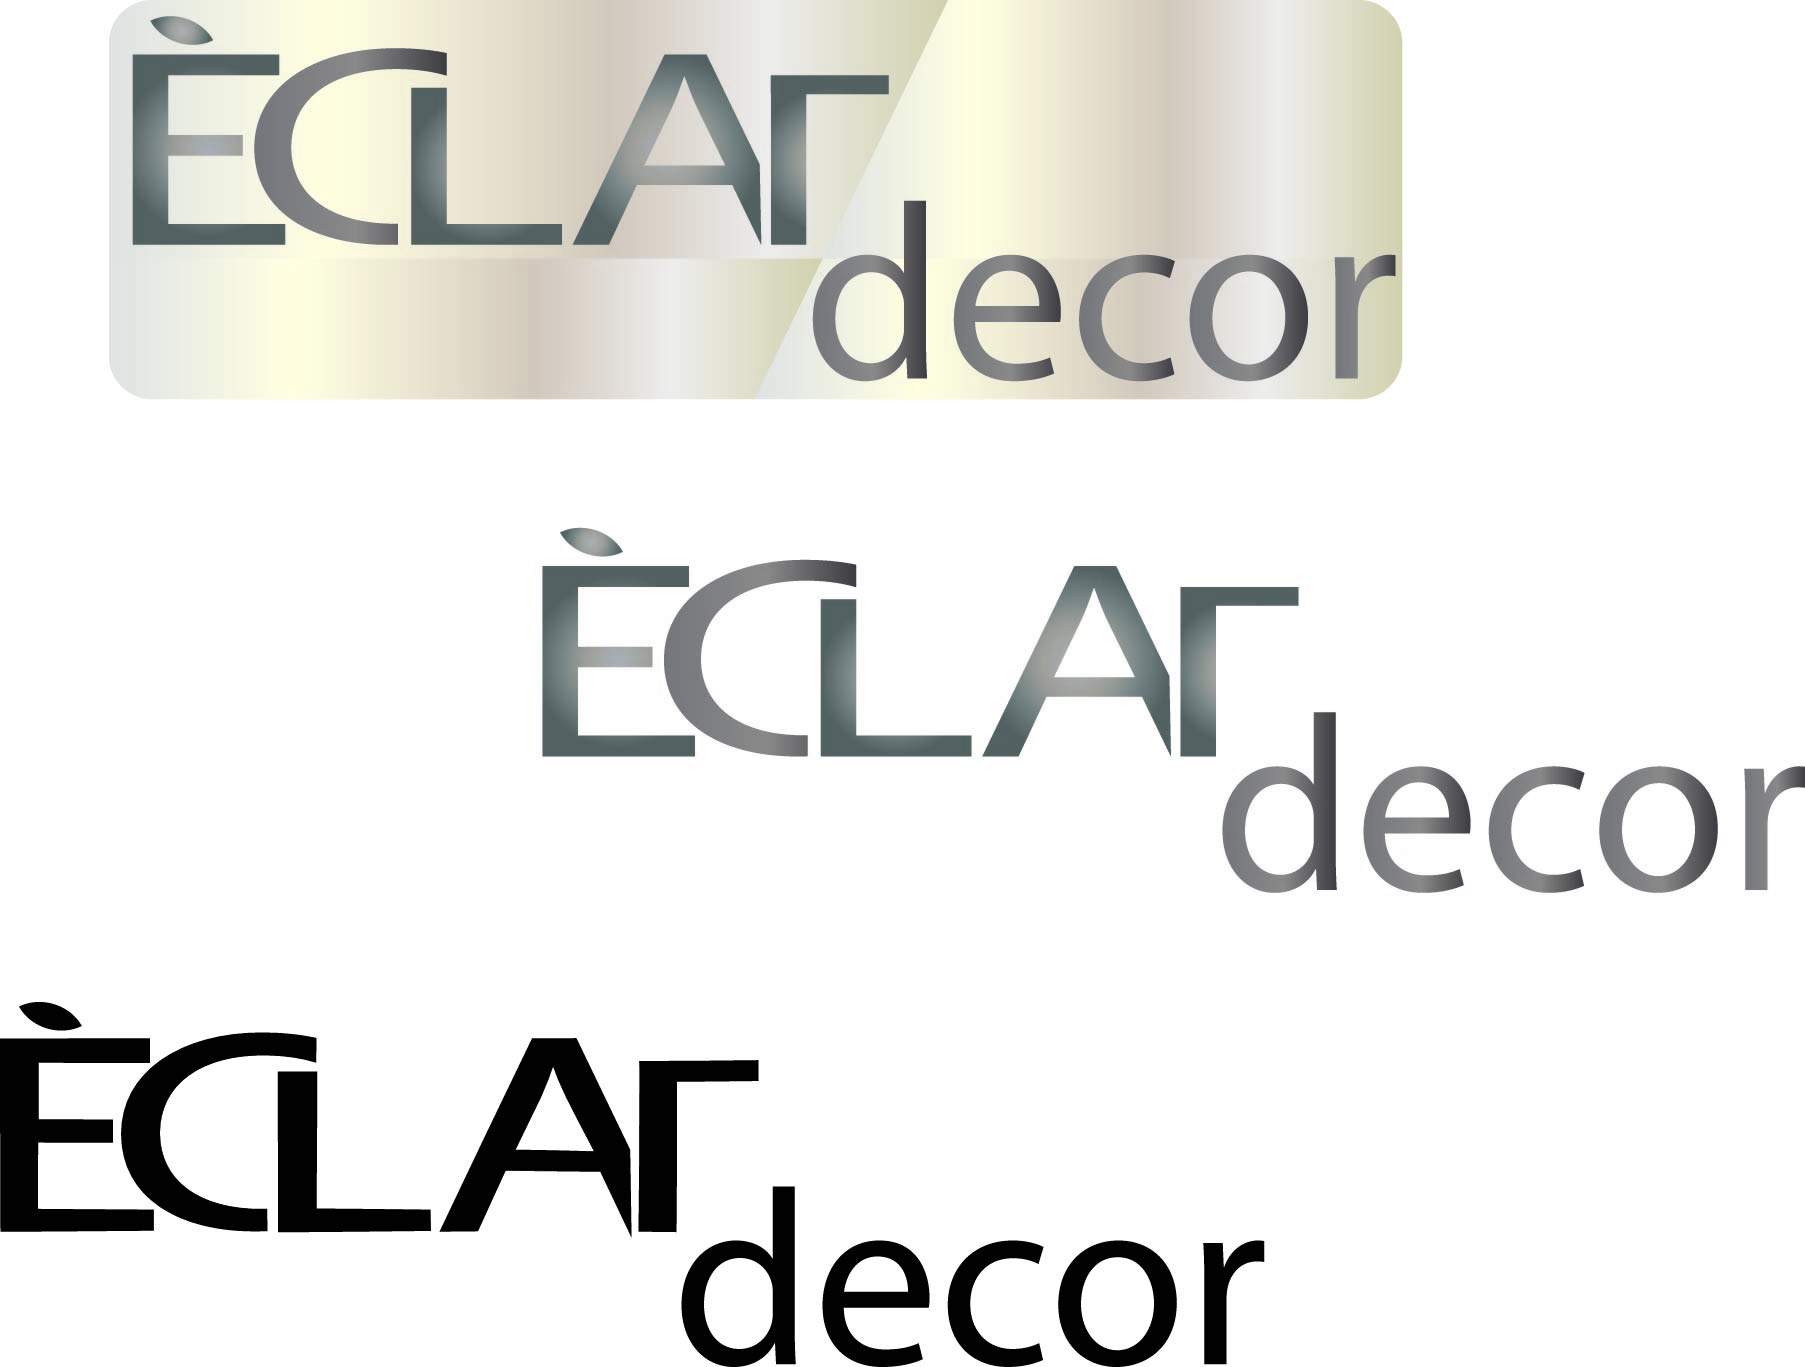 Logo Design by Susan Palmer - Entry No. 45 in the Logo Design Contest Imaginative Logo Design for Éclat Decor.